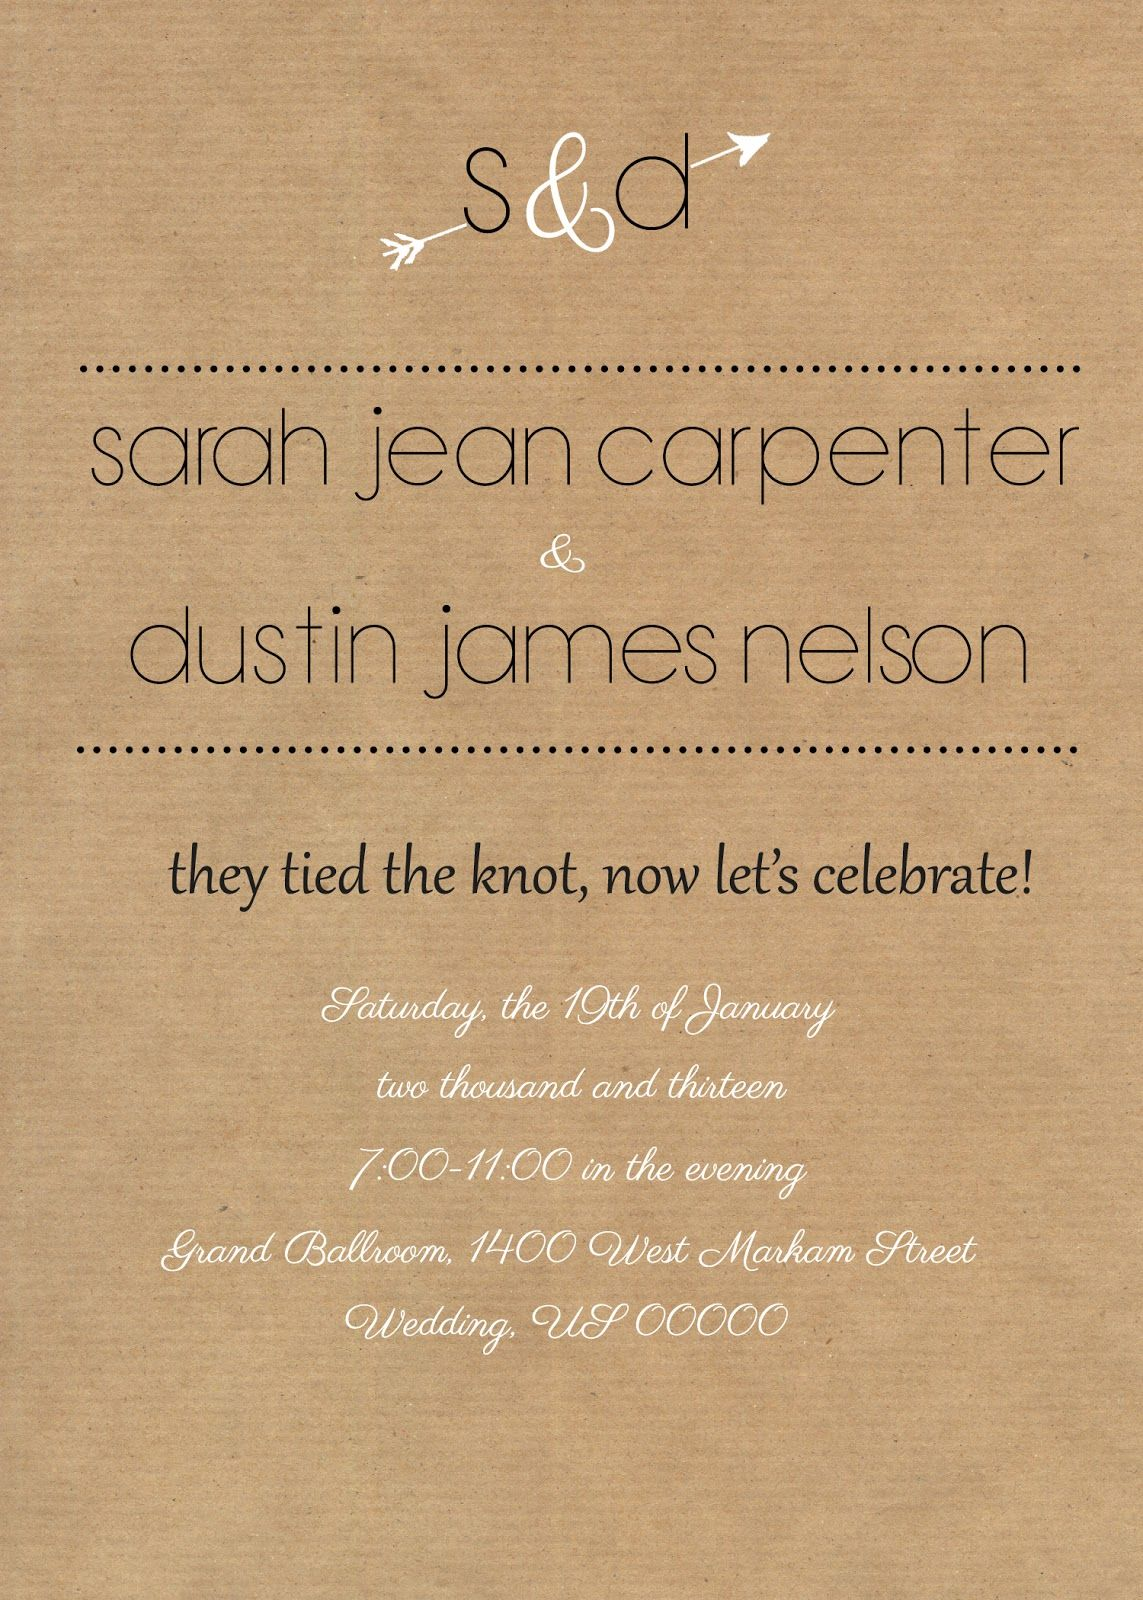 Rustic Reception Invite I Like The Wording Of This Especially If Someday Decide To Do A Small Courthouse Ceremony And Throw Party Afterward For Family: Small Wedding Invitation Wording At Websimilar.org